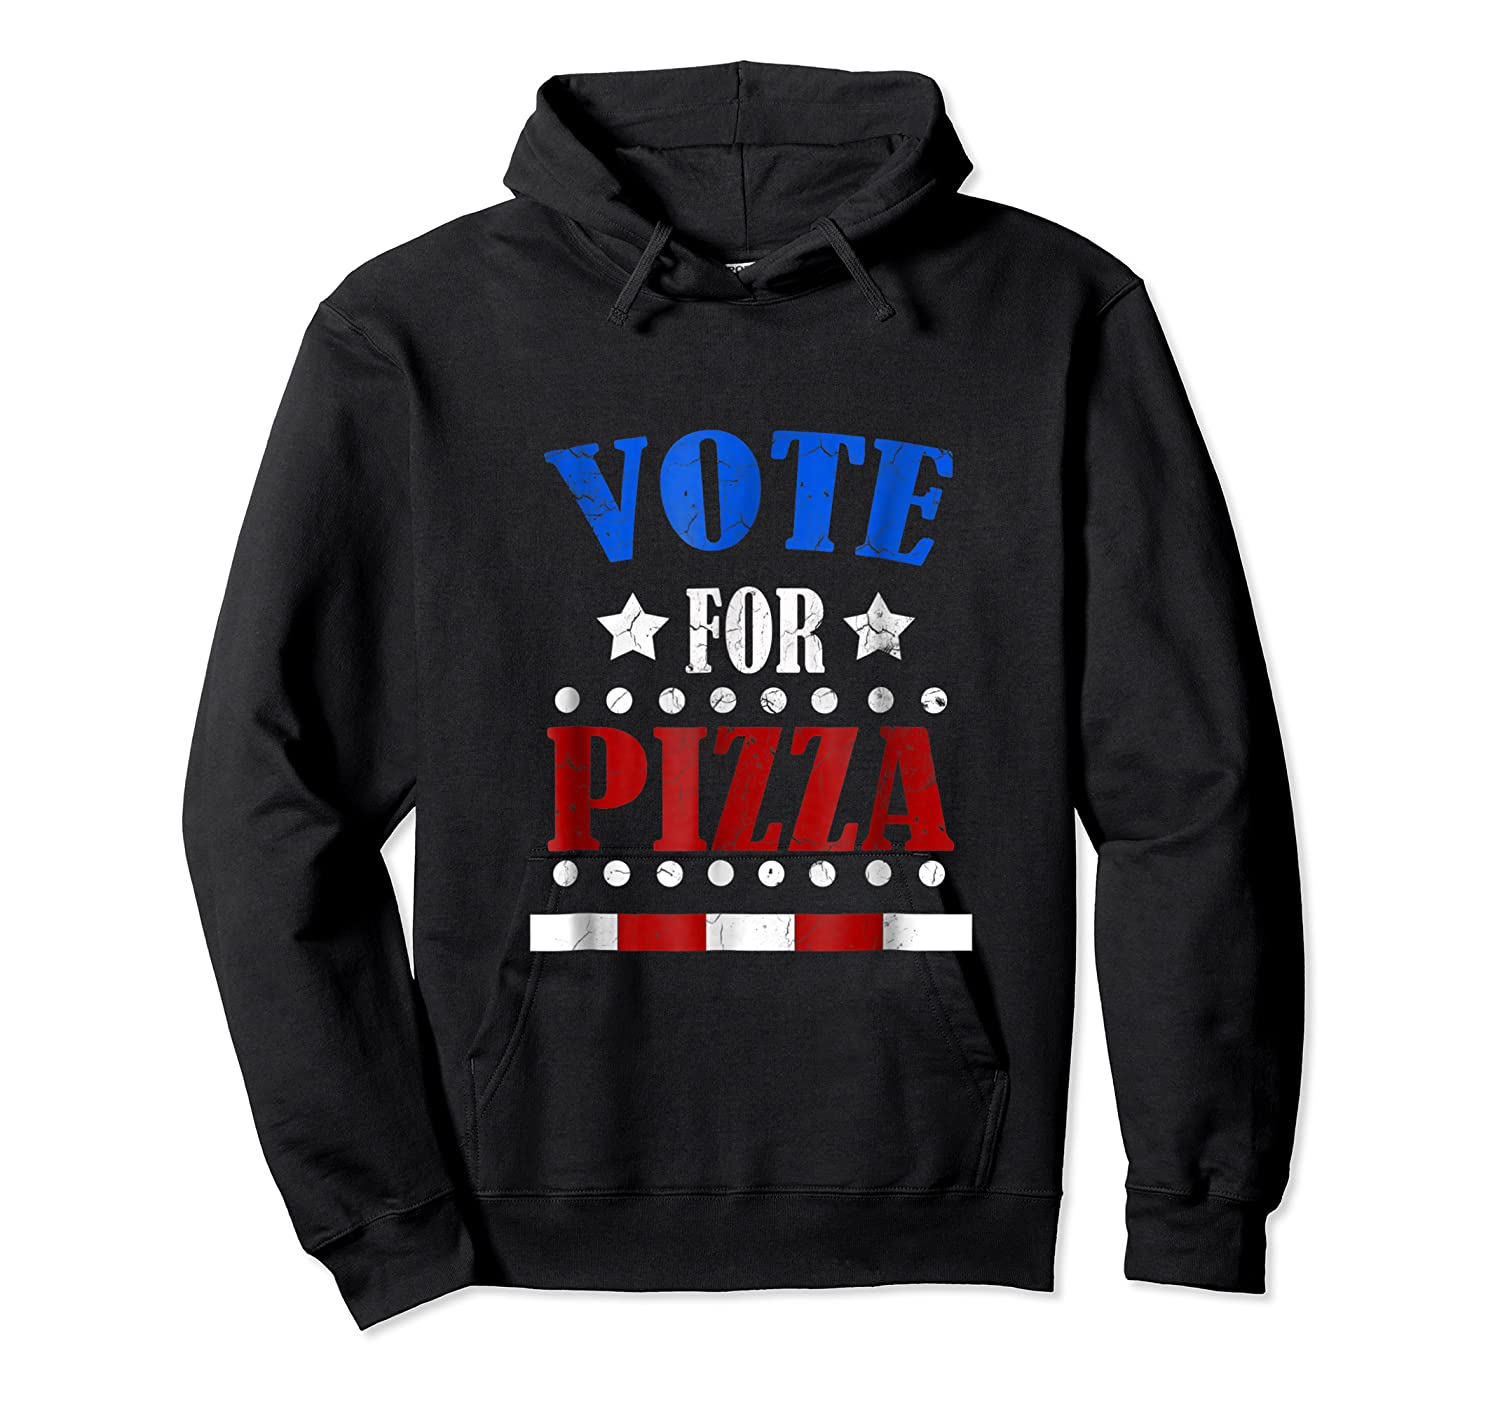 Vote For Pizza T Shirt Funny National Pizza Day Tee Election Unisex Pullover Hoodie